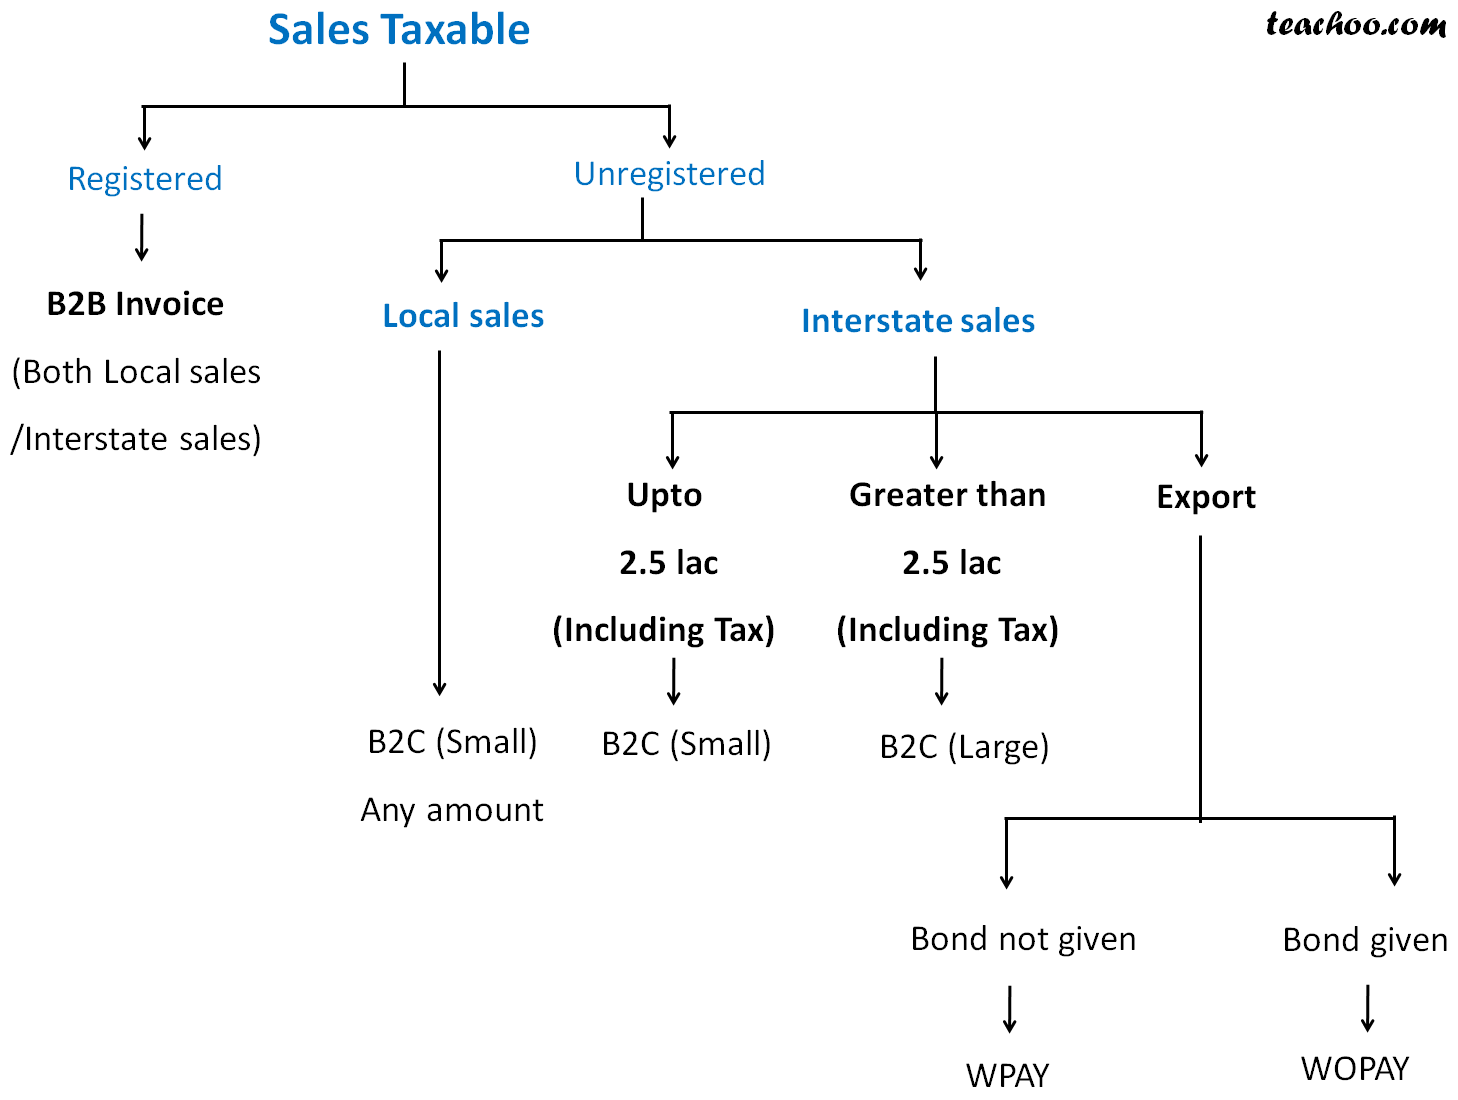 Sales Taxable.jpg